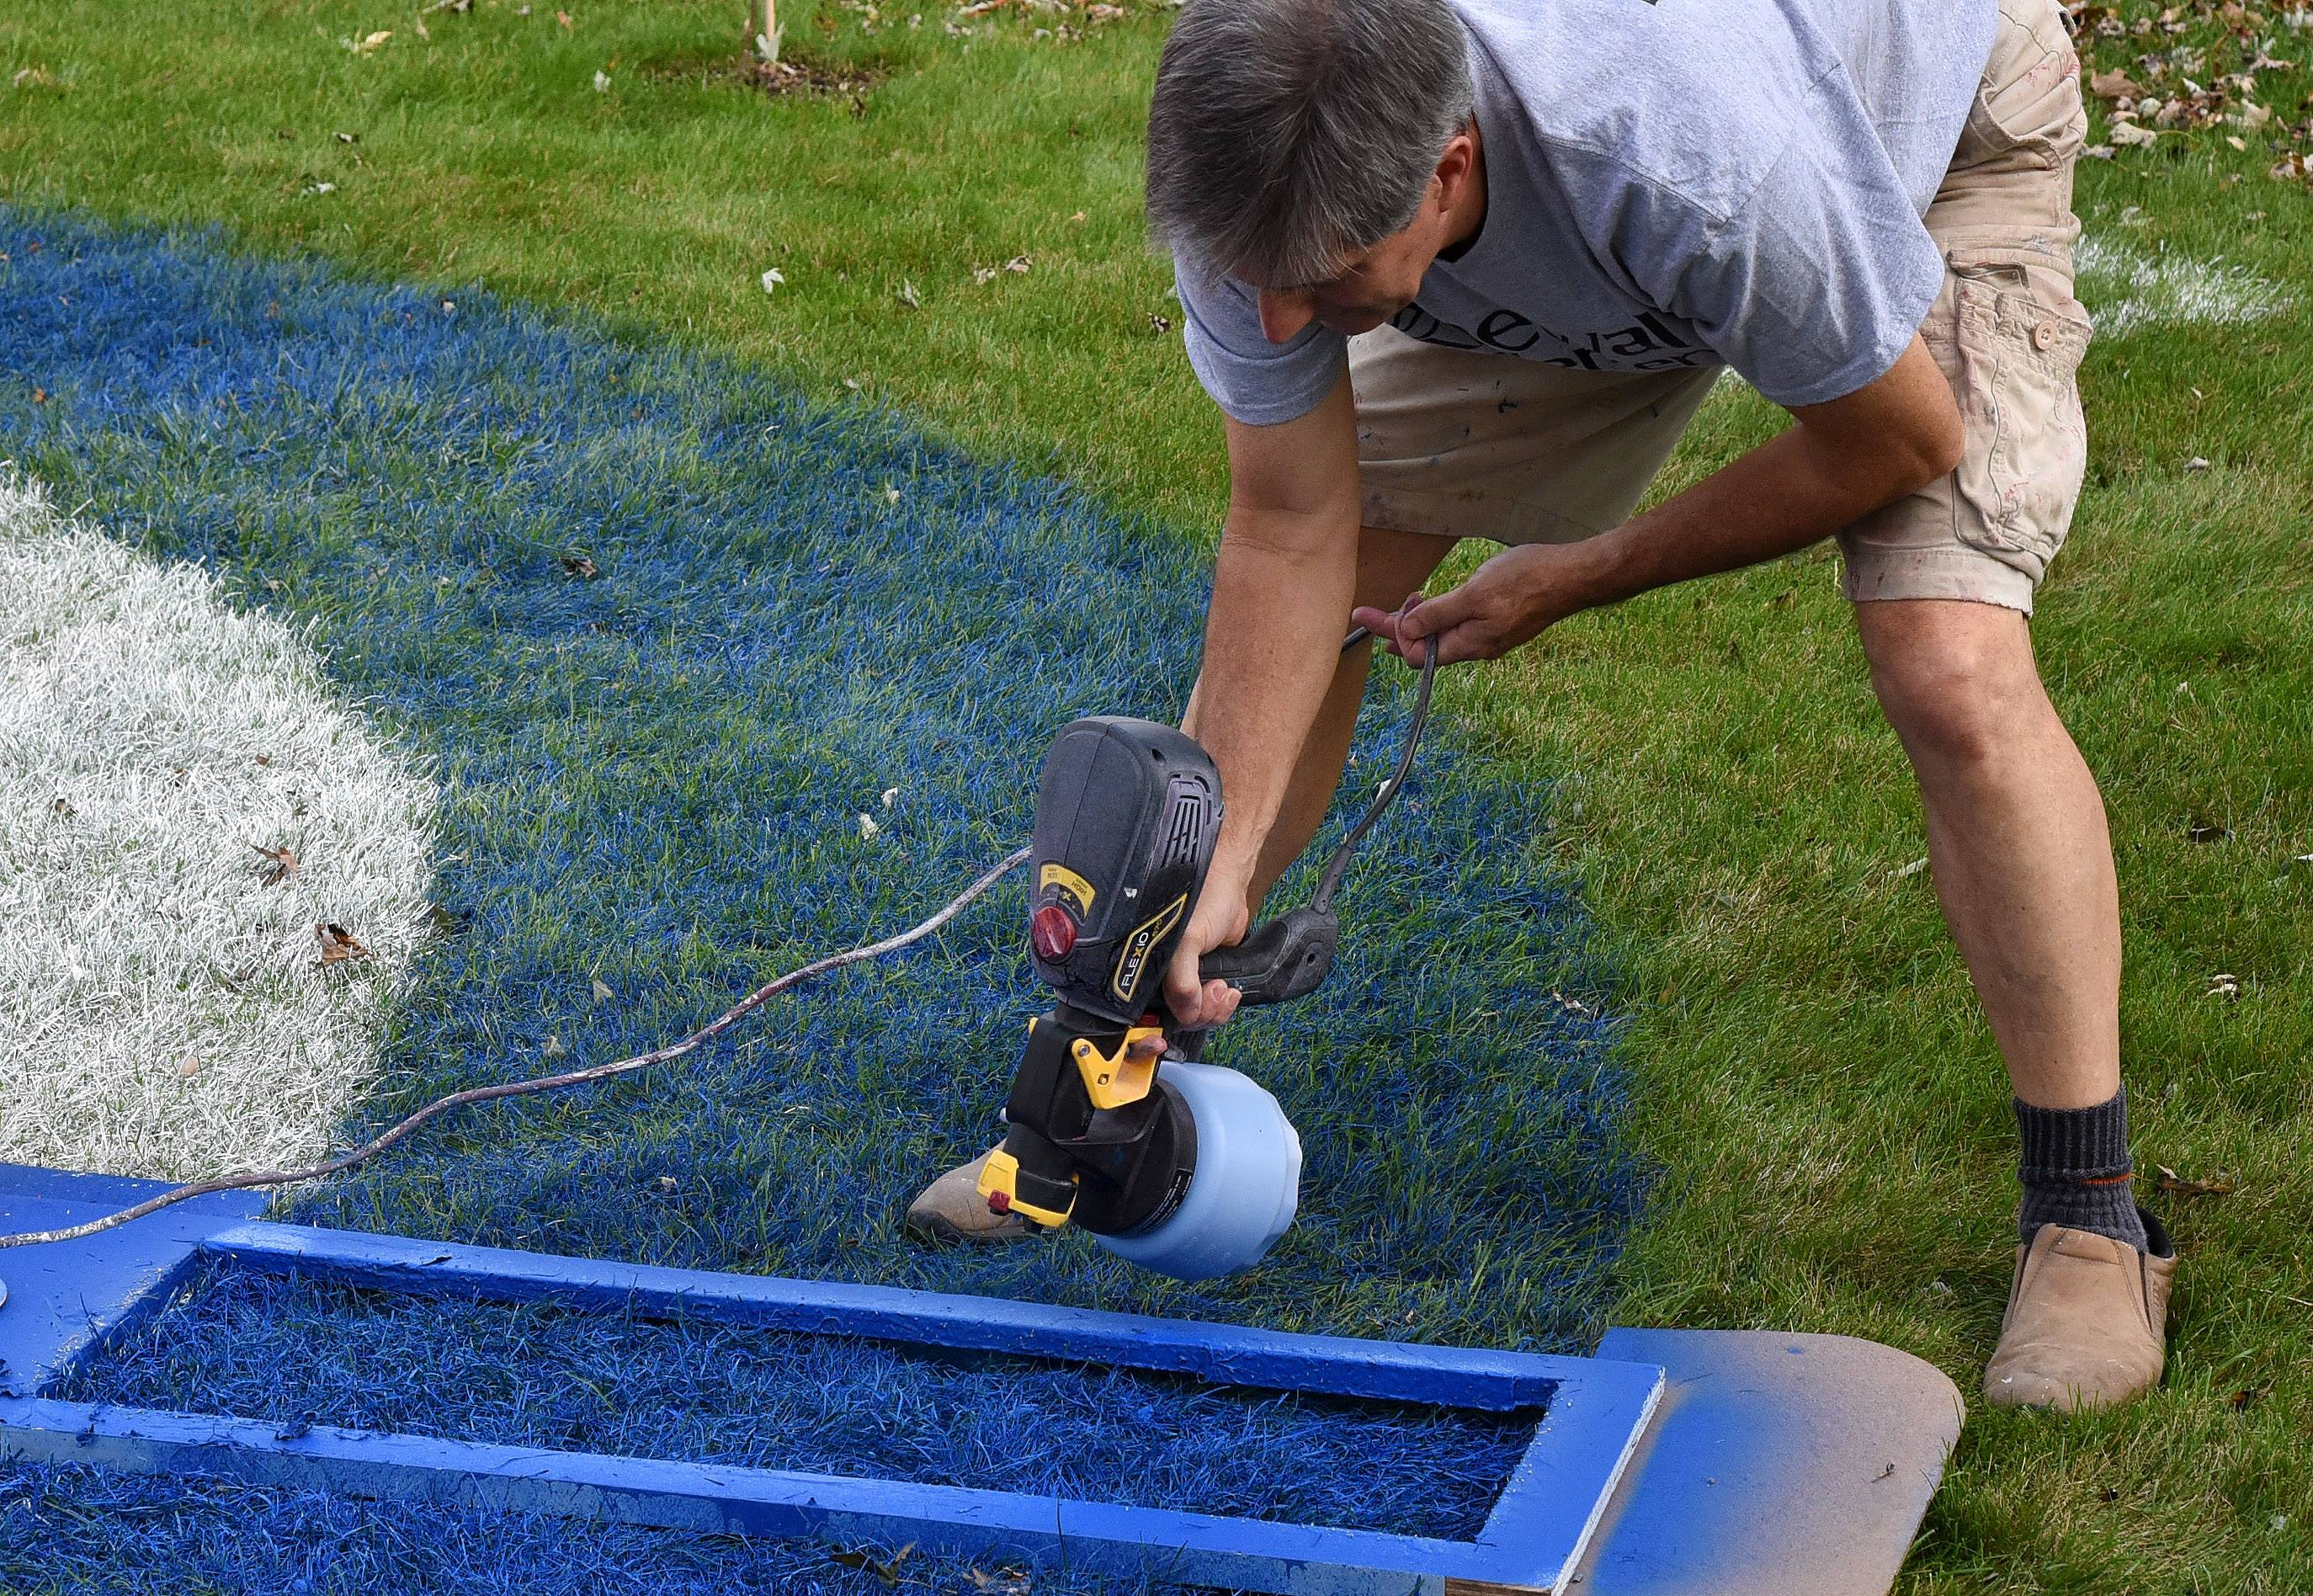 Jim McNamara of Hoffman Estates uses a special jig to retouch the 27-foot-diameter Cubs logo on his front lawn. It took more than 10 hours to paint the logo, and every rainfall requires a three-hour touch-up.